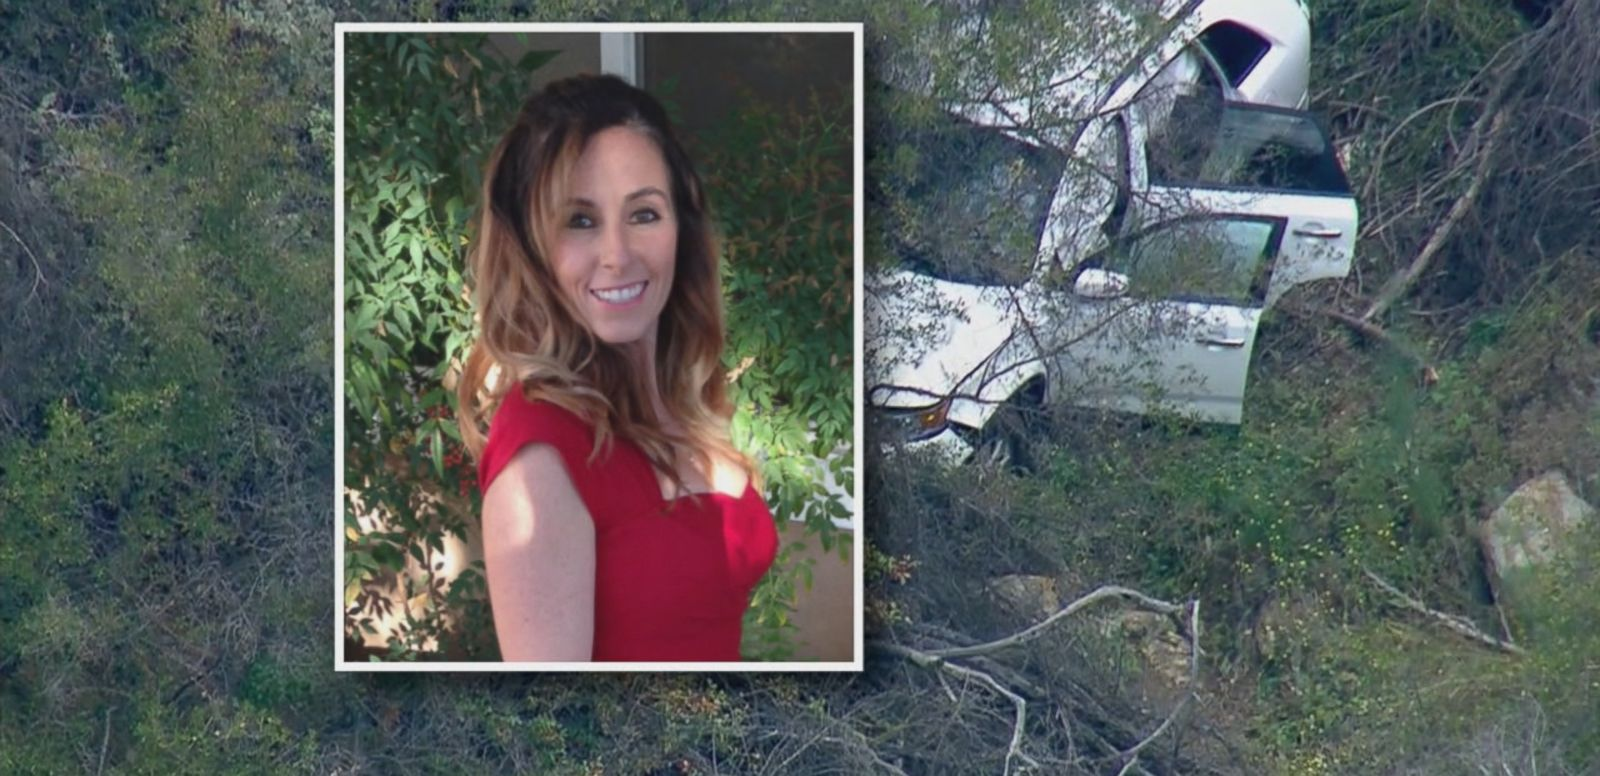 VIDEO: Missing Woman Rescued After 48 Hours